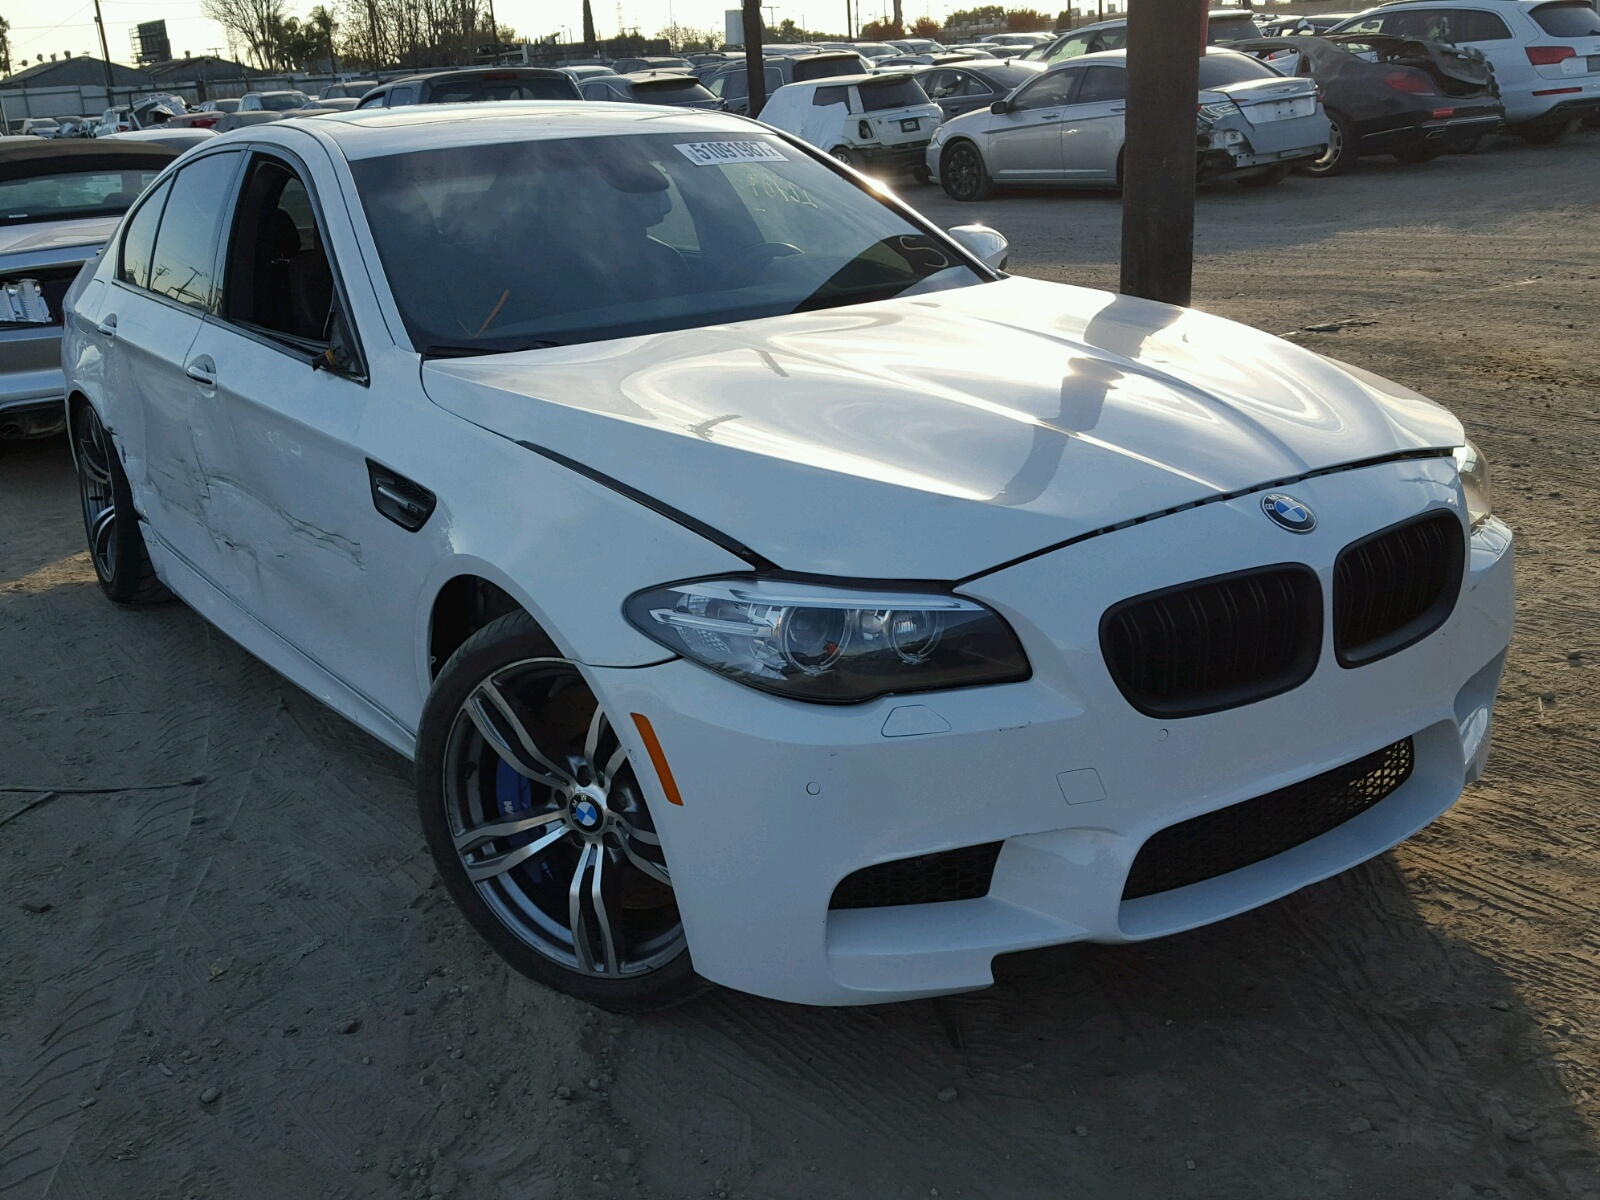 WBSFVCFD WHITE BMW M On Sale In CA LOS ANGELES - 2004 bmw m5 for sale